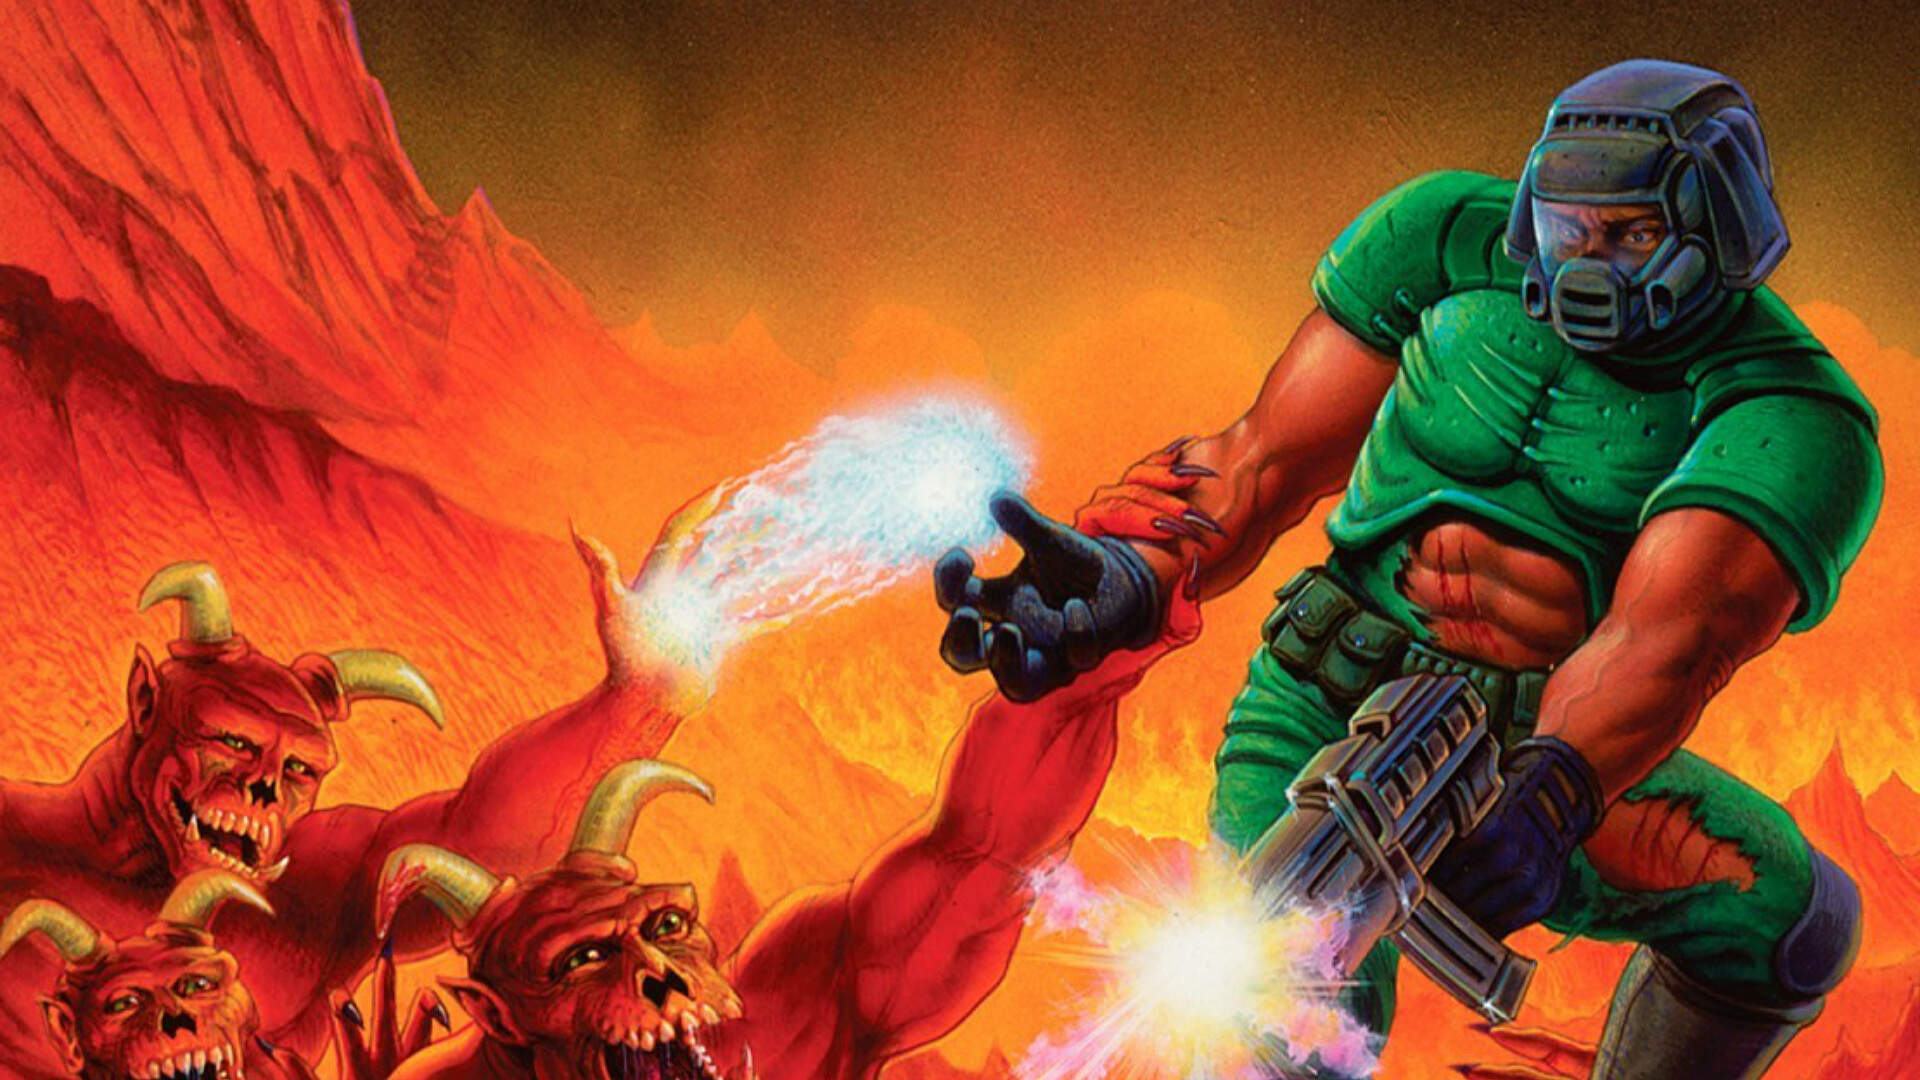 Doom Designer John Romero Has Some Harsh Words for Looter Shooters